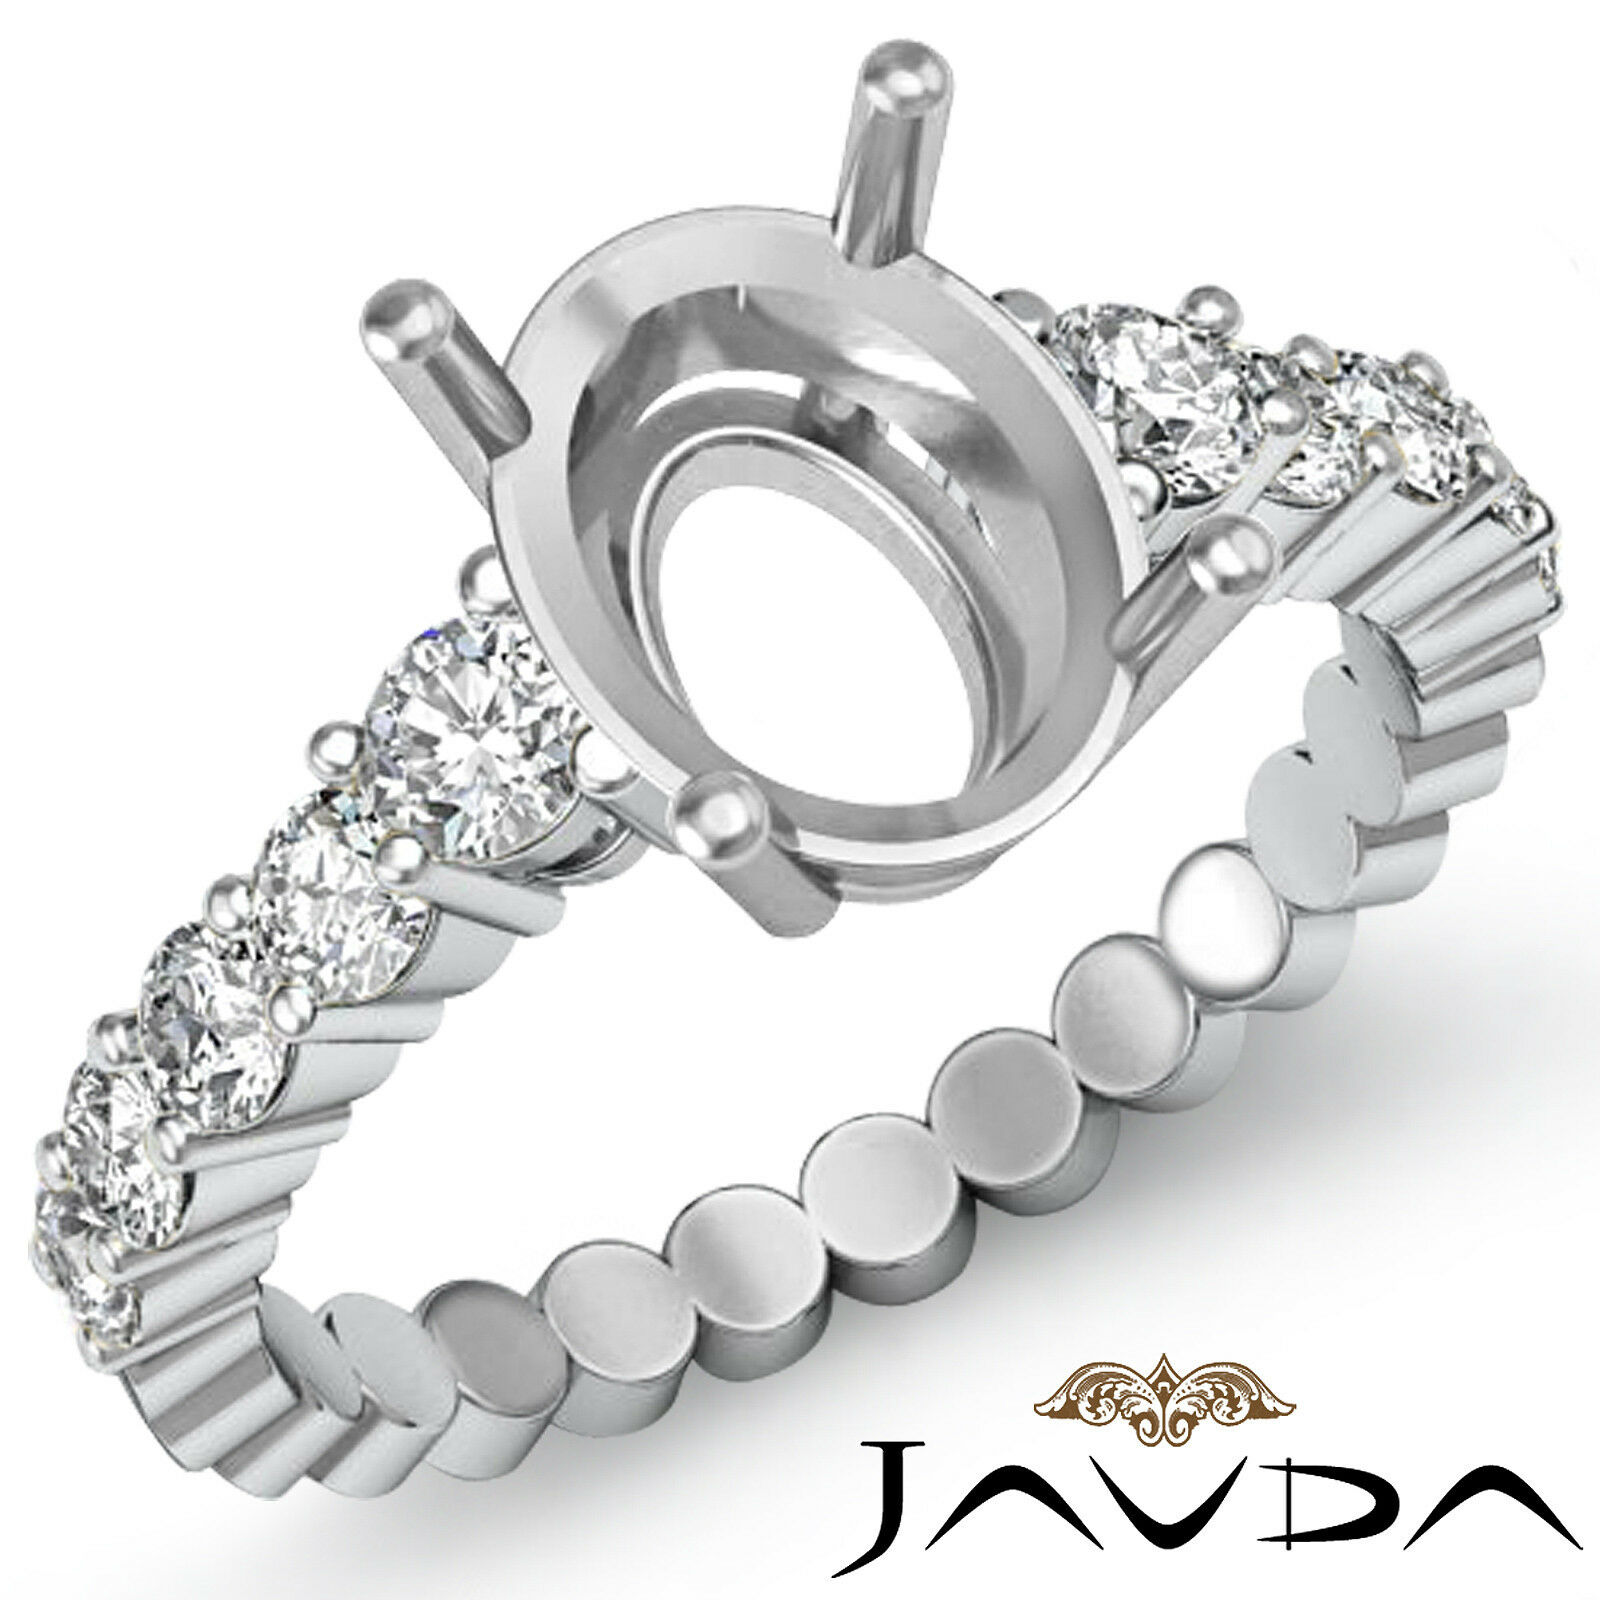 Diamond Engagement Oval Semi Mount Shared Prong Set women's Ring Platinum 0.70Ct